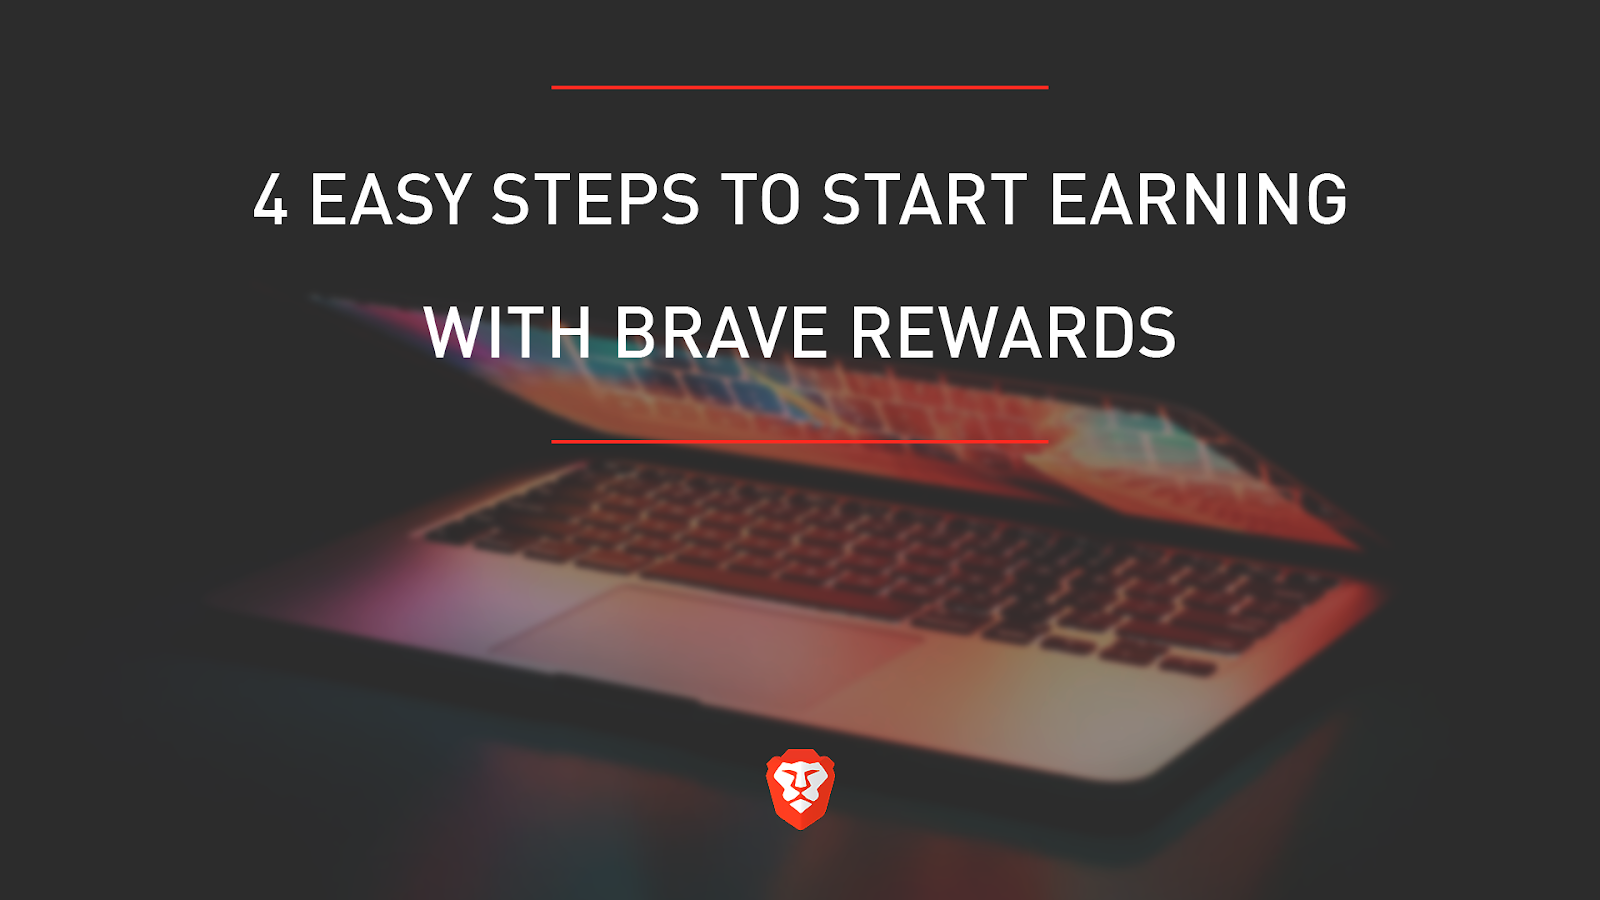 4 Easy Steps to Start Earning with Brave Rewards